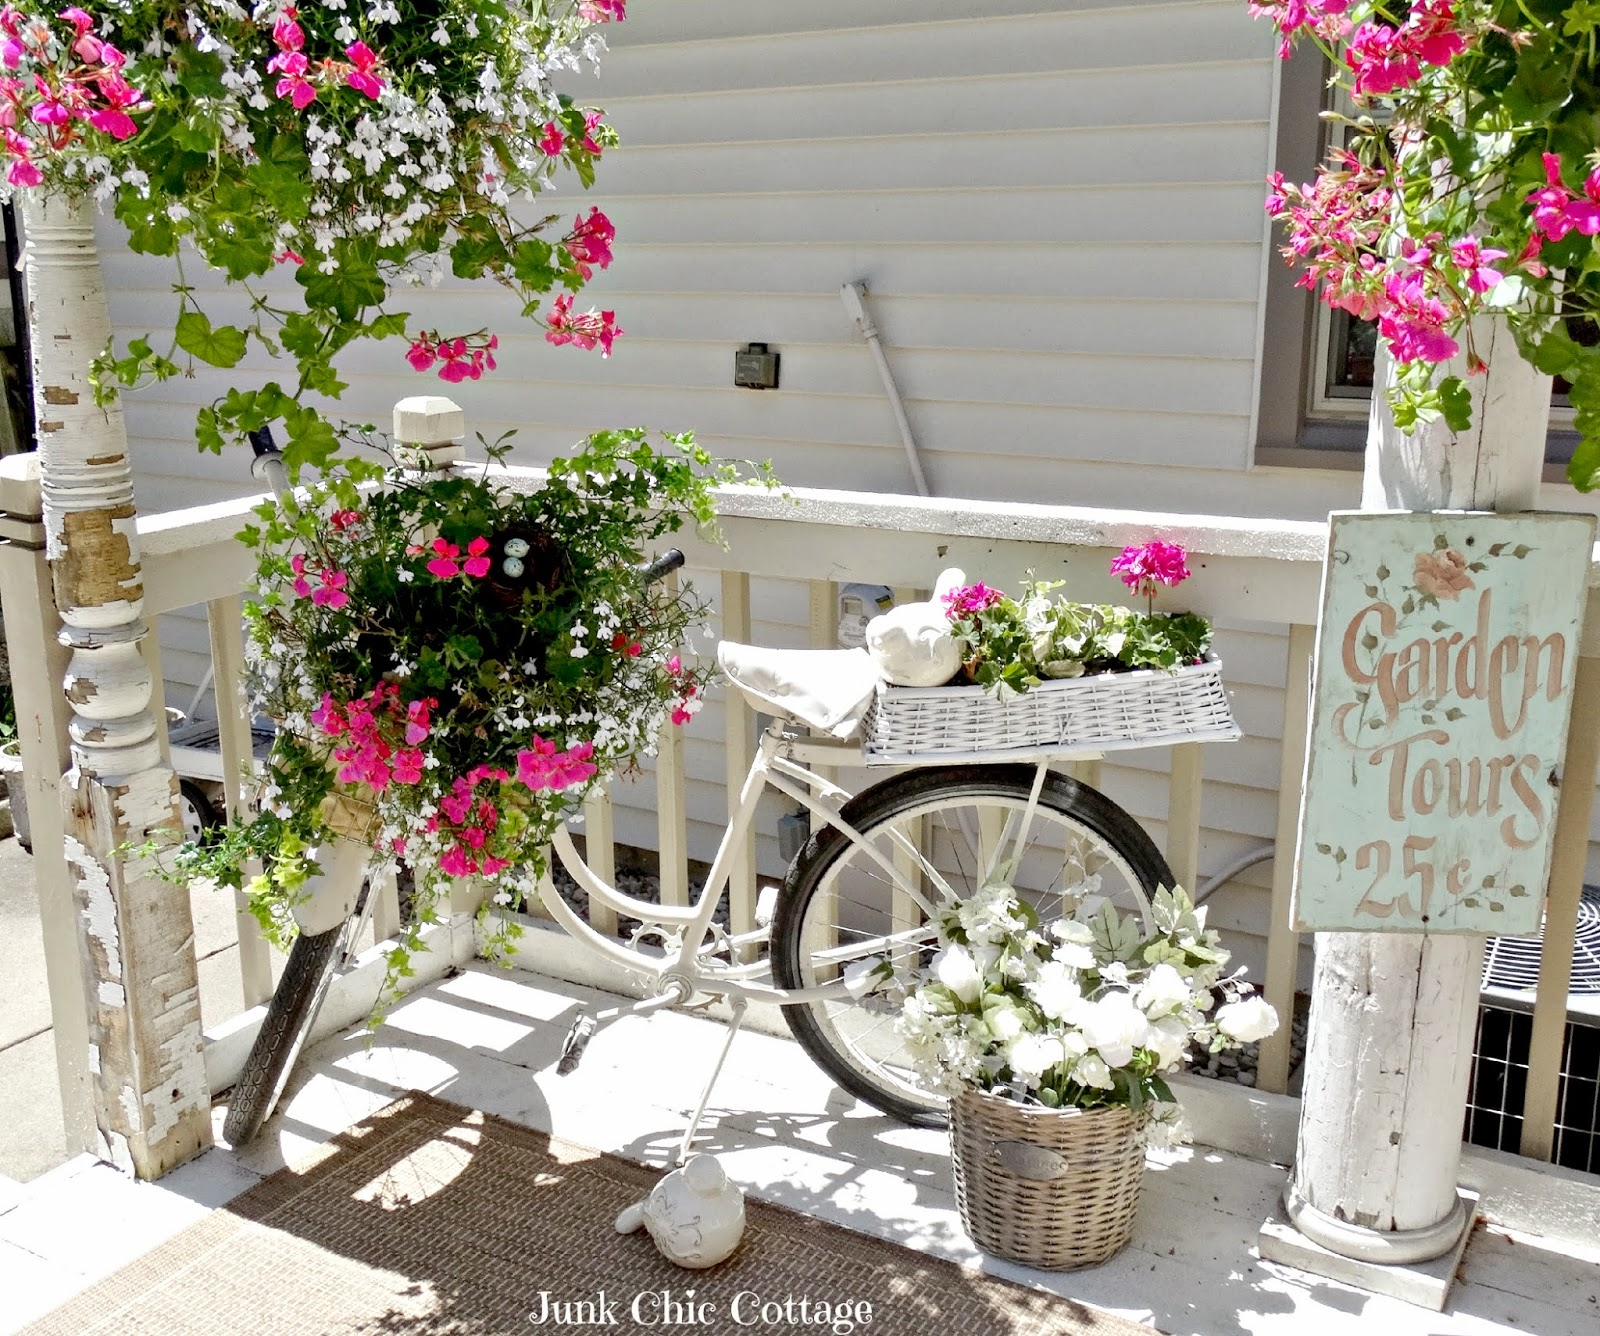 Junk chic cottage deck sanctuary for Decoration jardin balcon